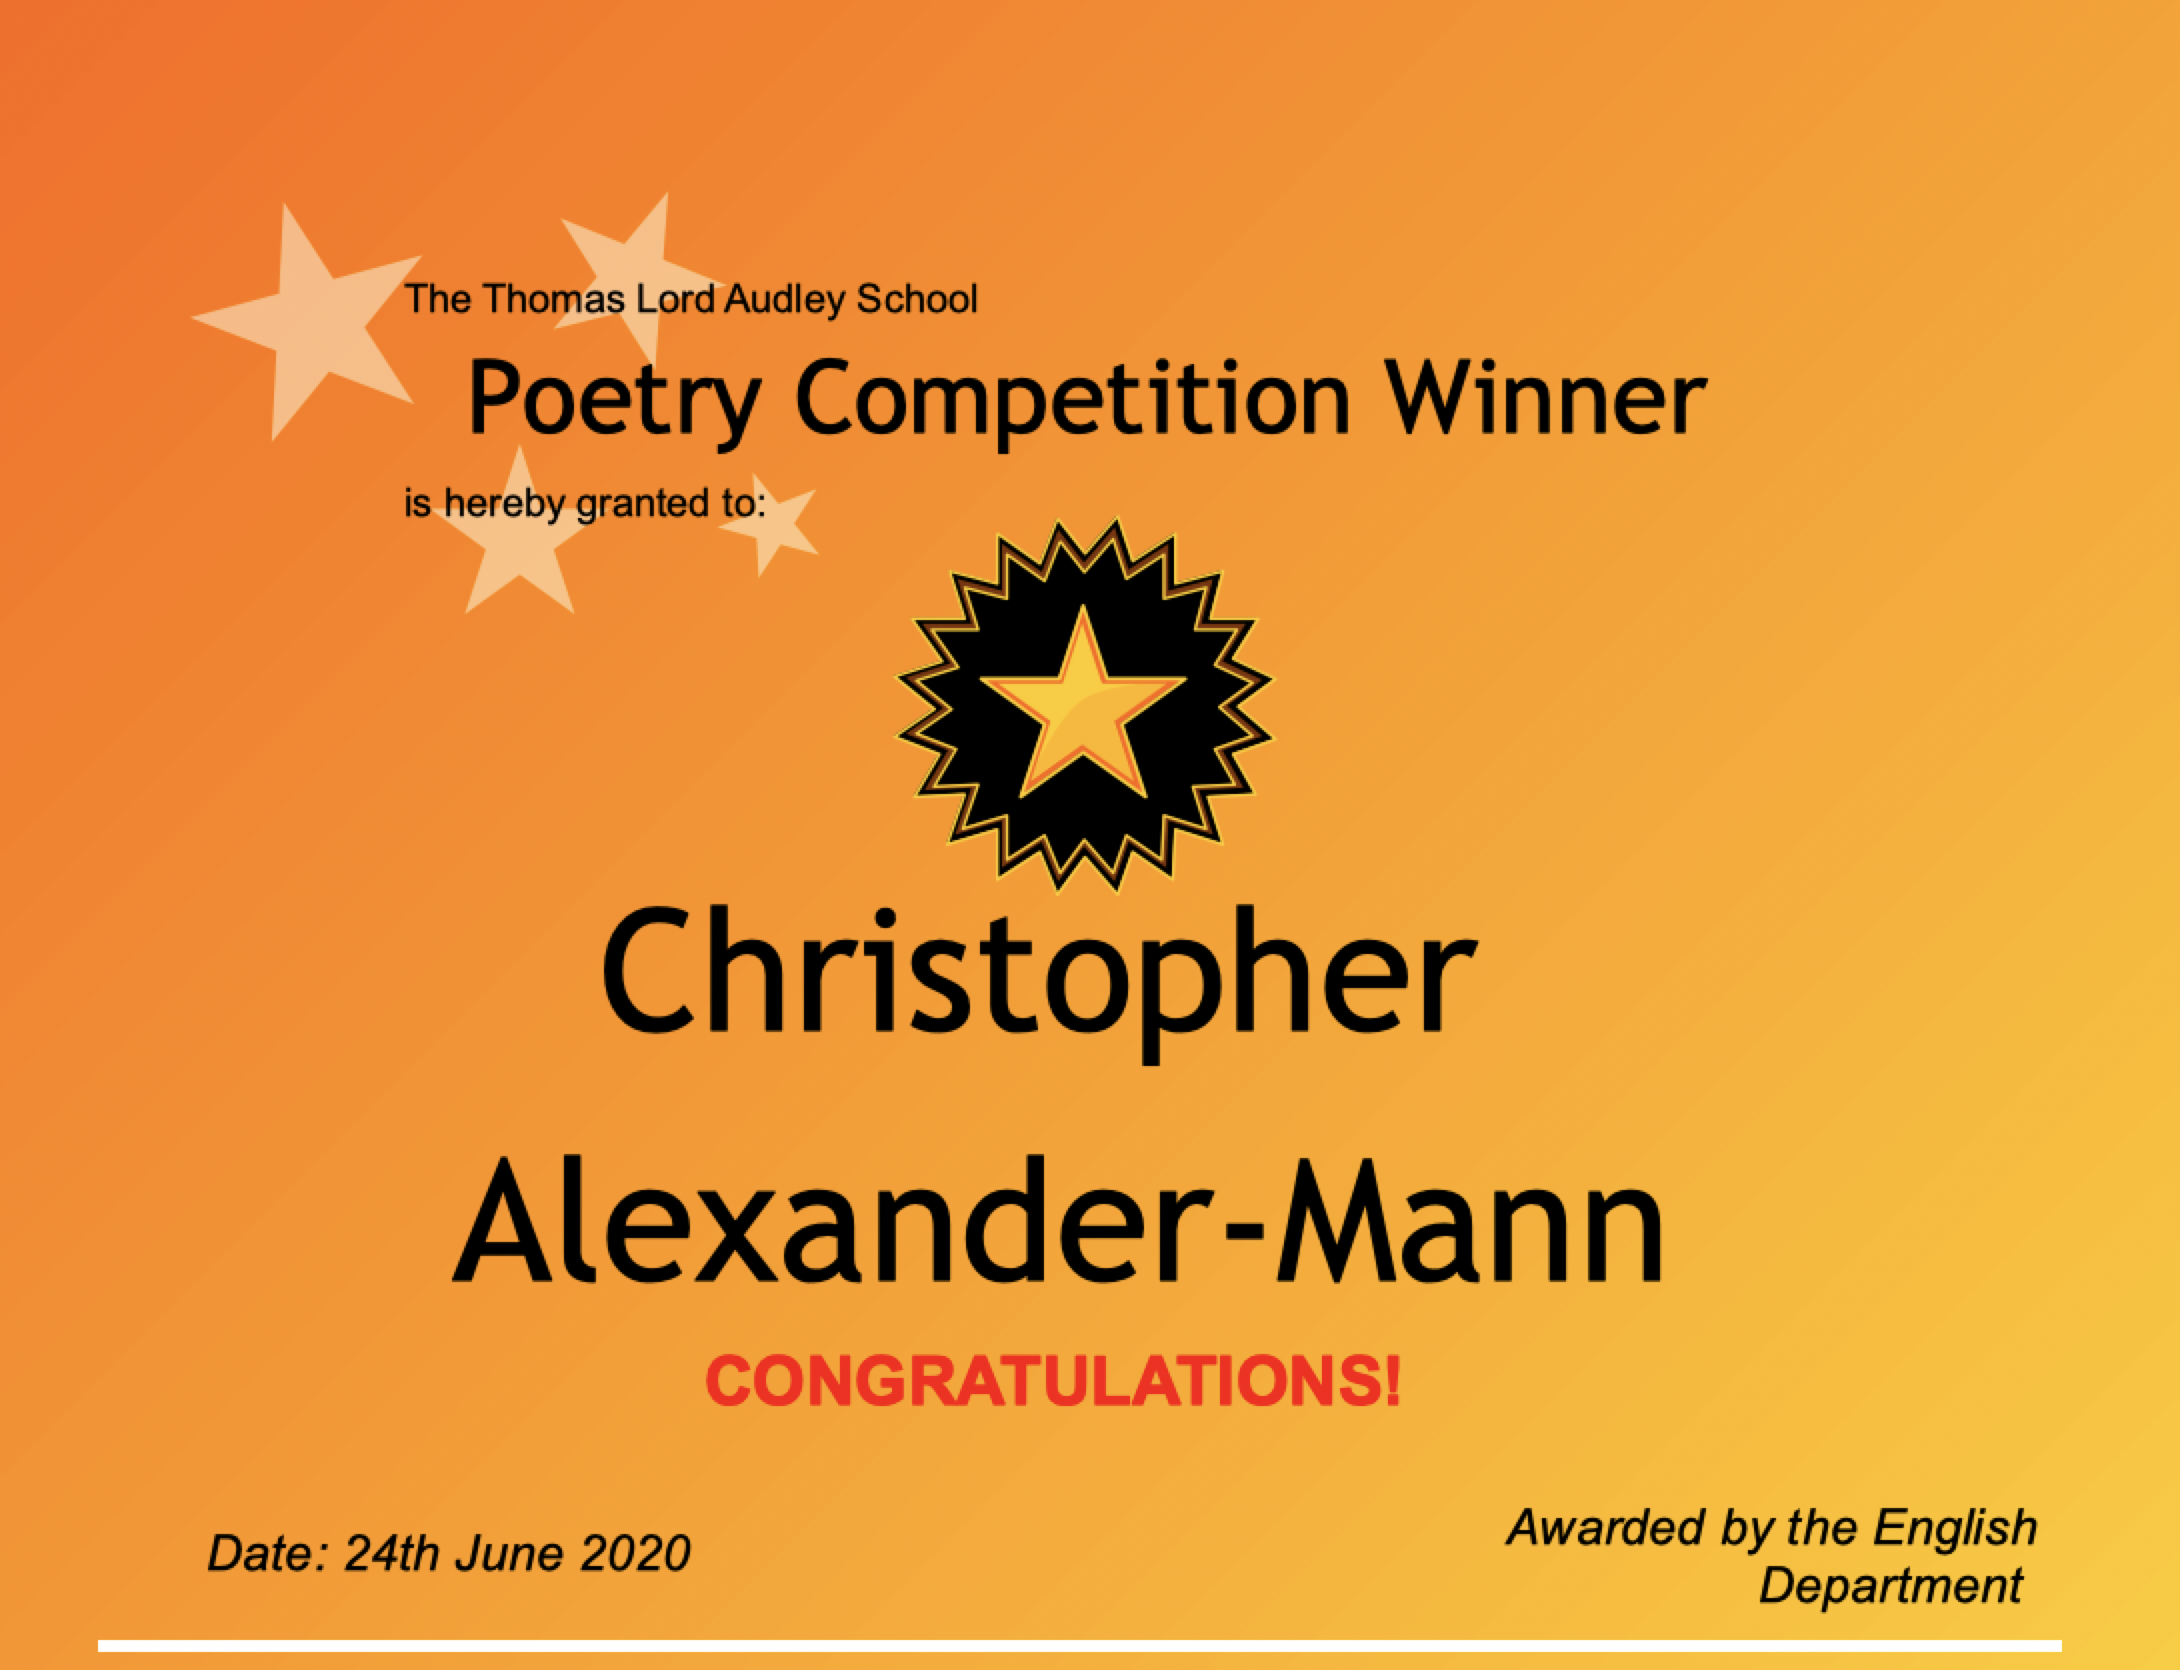 24/06/20 - Poetry Competition Winner